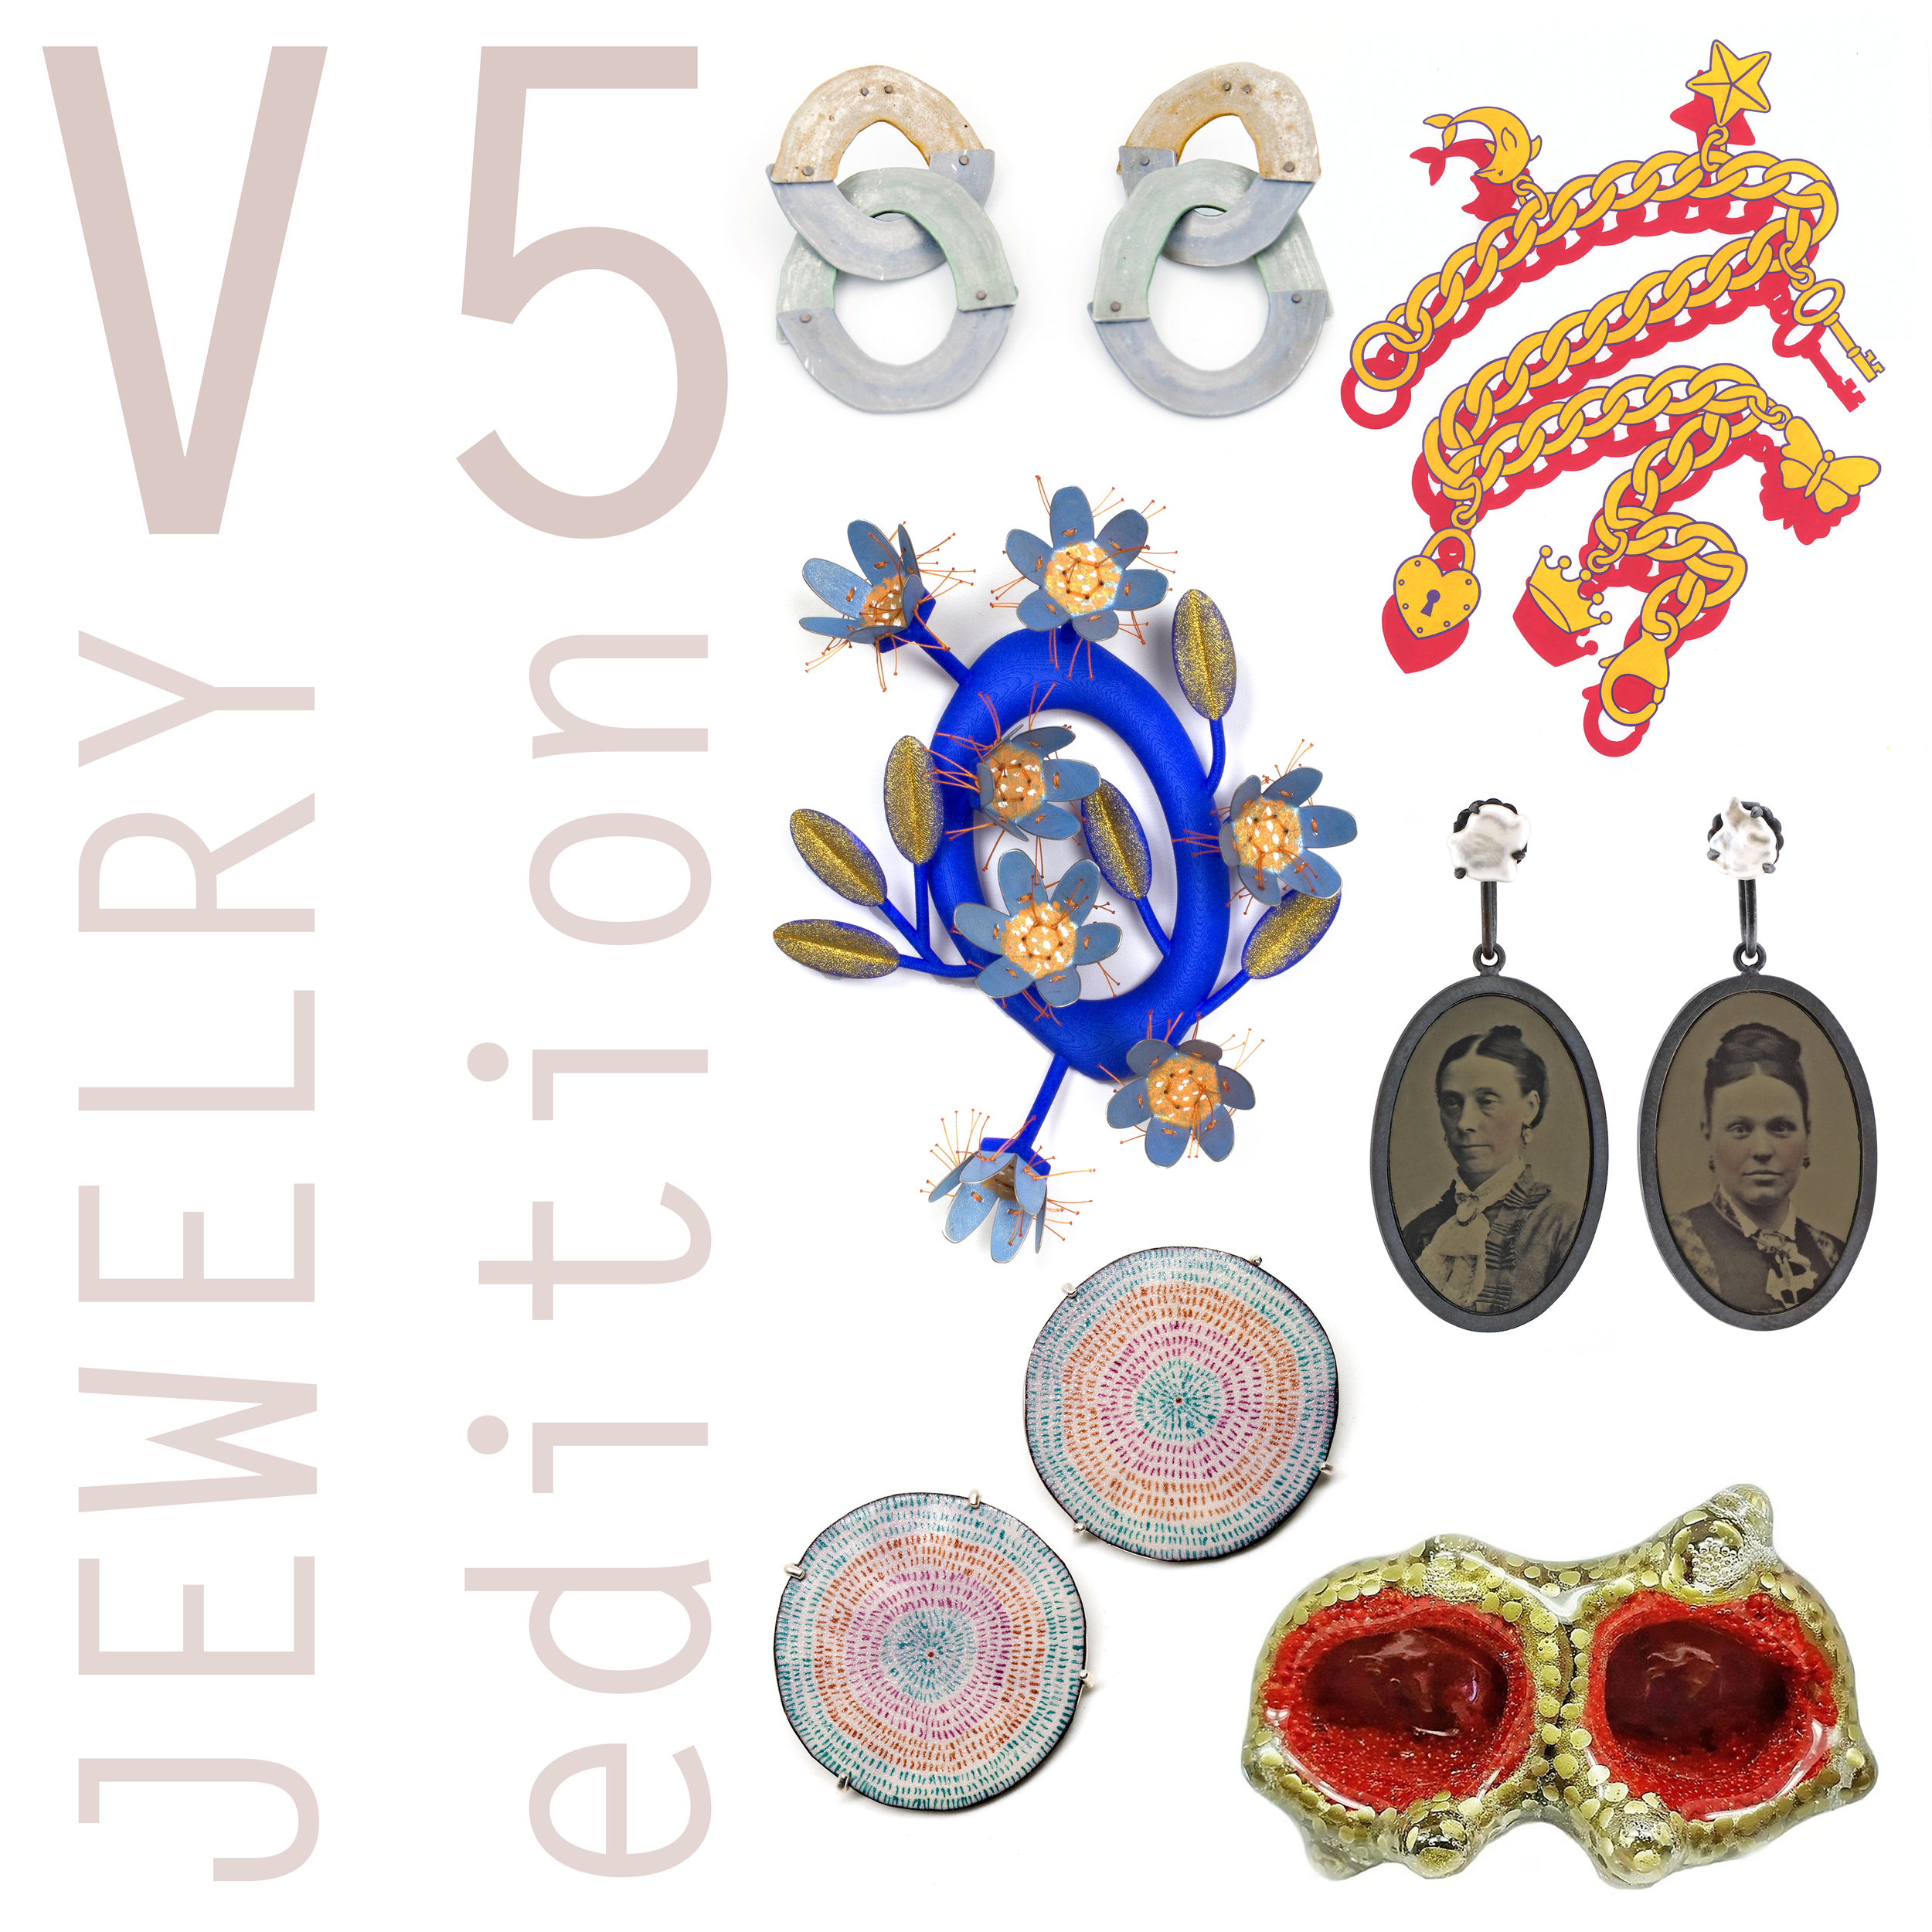 JEWELRY Edition   is an ever-evolving creative project built to promote and celebrate contemporary jewelry. Founded in 2012.  Vol.1 2013-2014 Vol.2 2015-2016 Vol.3 2016-2017 Vol.4 2017-2018 Vol.5 2019-2020